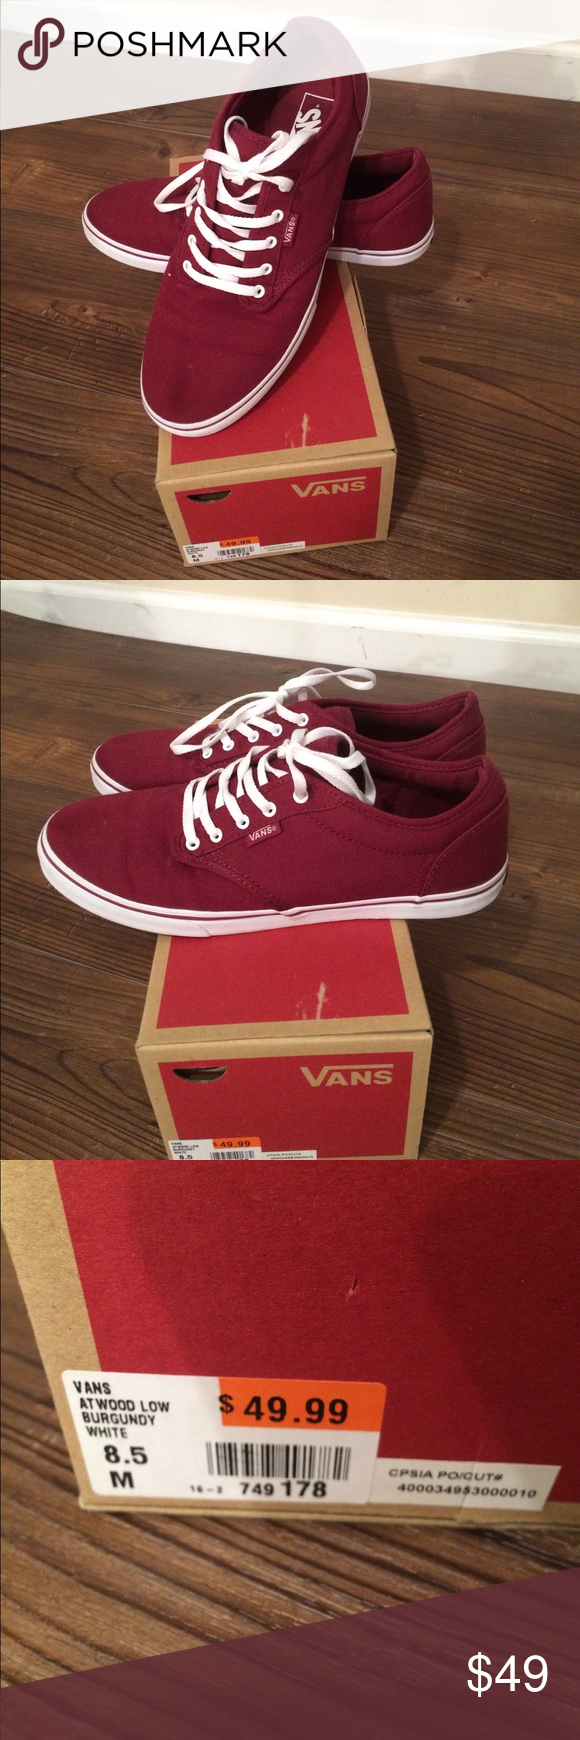 2fe2a56b72 Burgundy Vans 8.5 women s Atwood low style burgundy and white vans size 8.5  women s. Wore once and bought another style I like better.